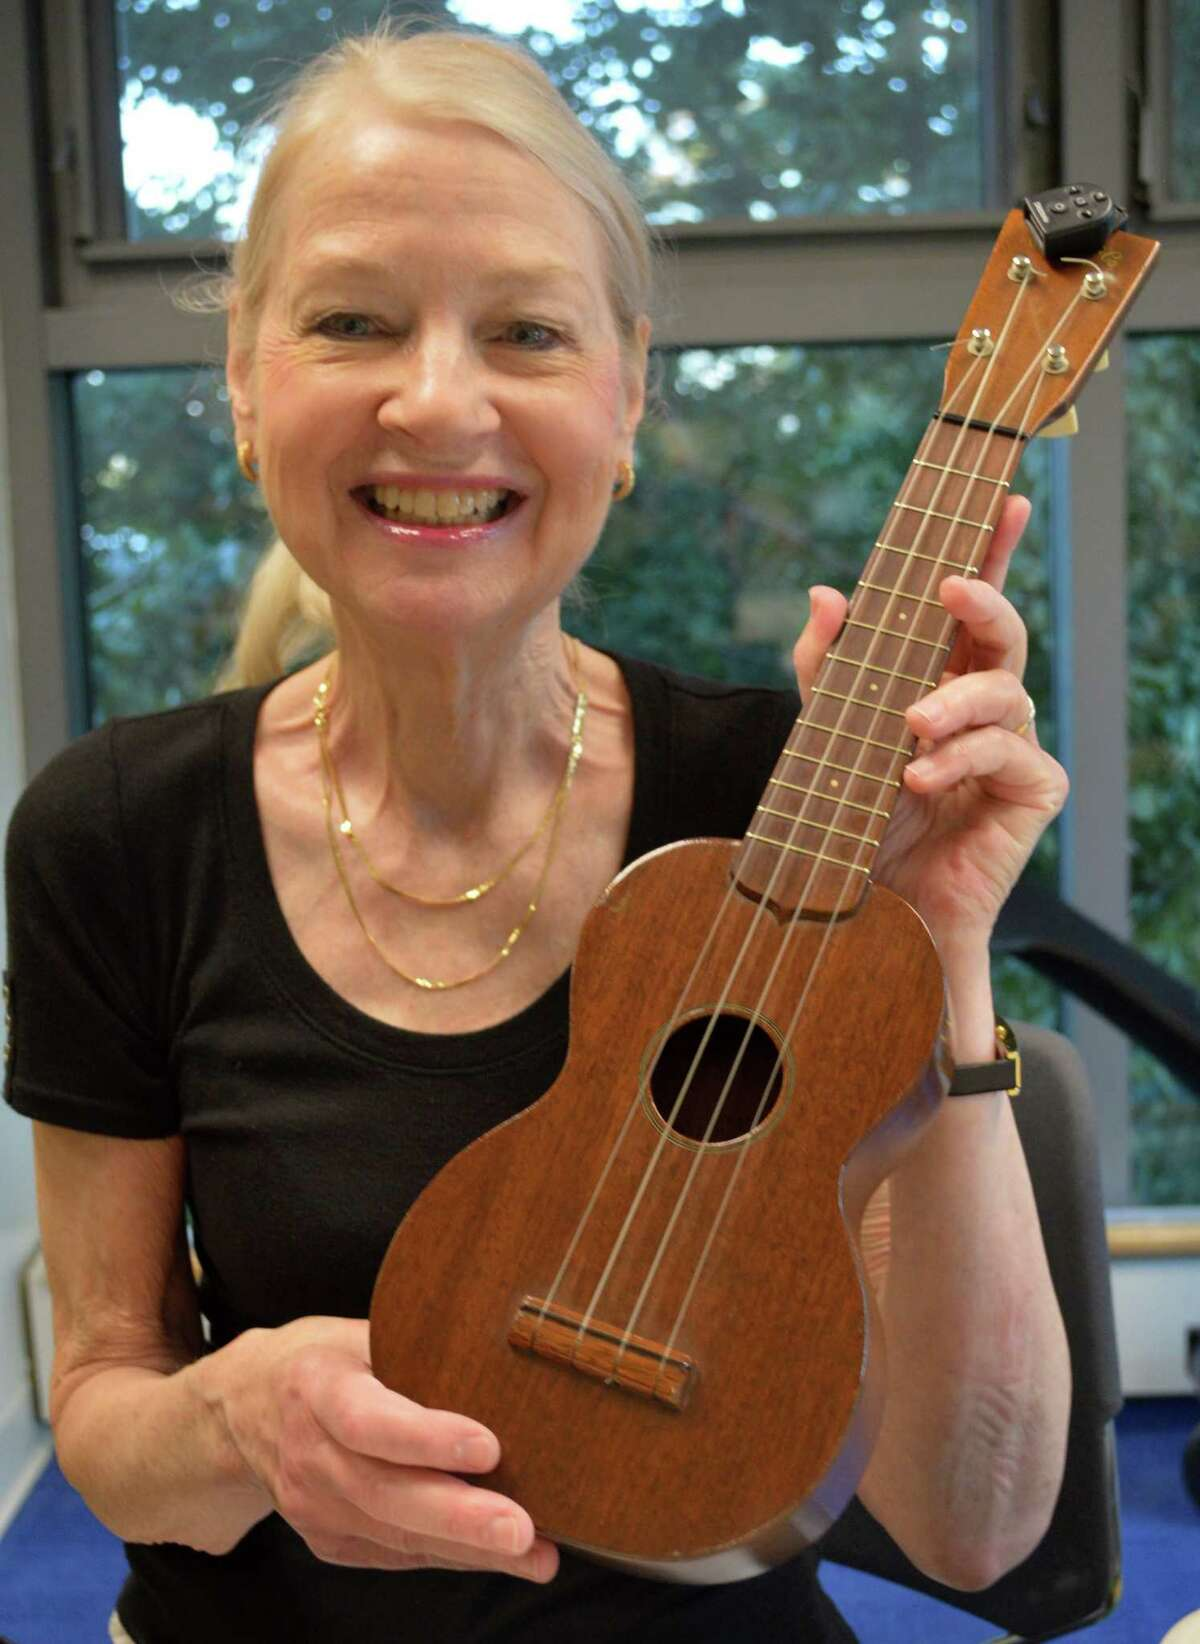 Pat Blaufuss, of Westport, shows off the 60-year-old Martin ukelele she inherited from her mother.